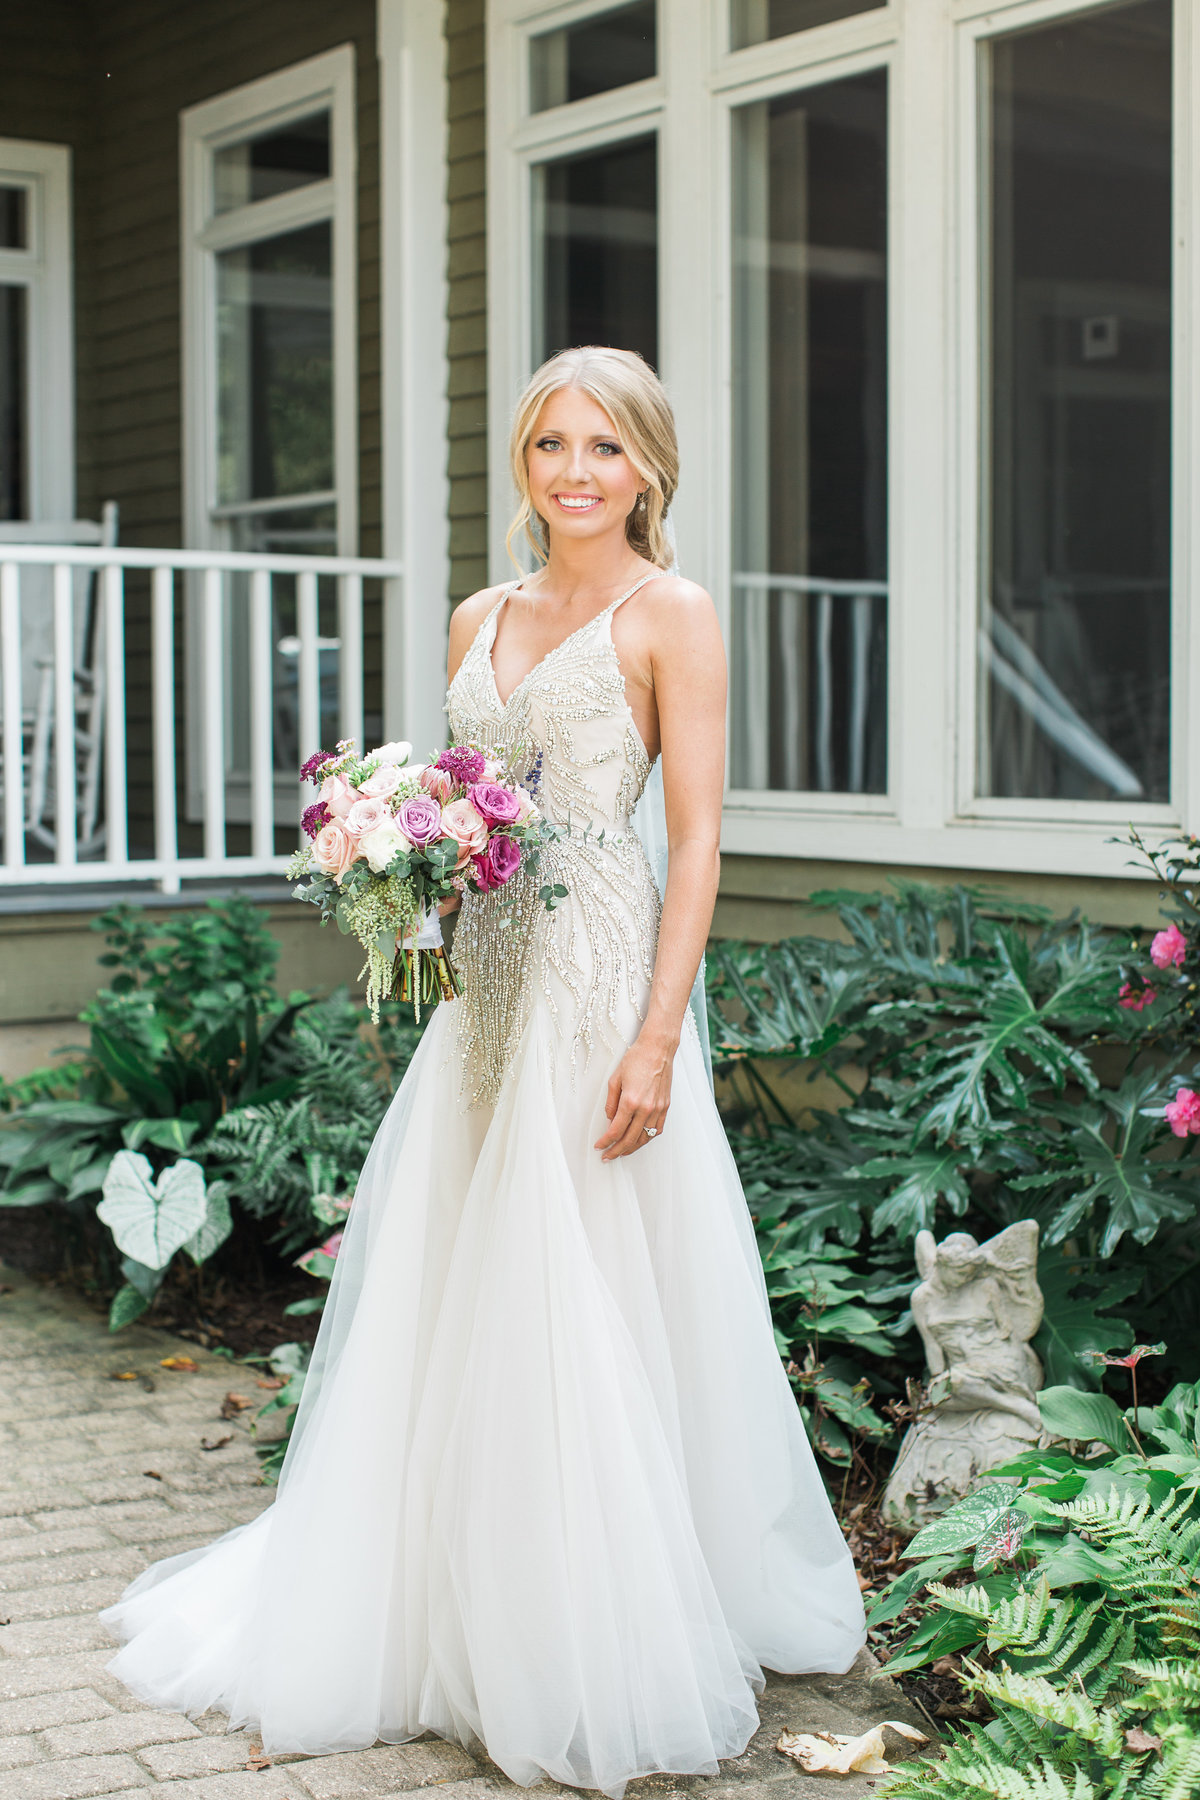 Eden & Will Wedding_Lindsay Ott Photography_Mississippi Wedding Photographer76